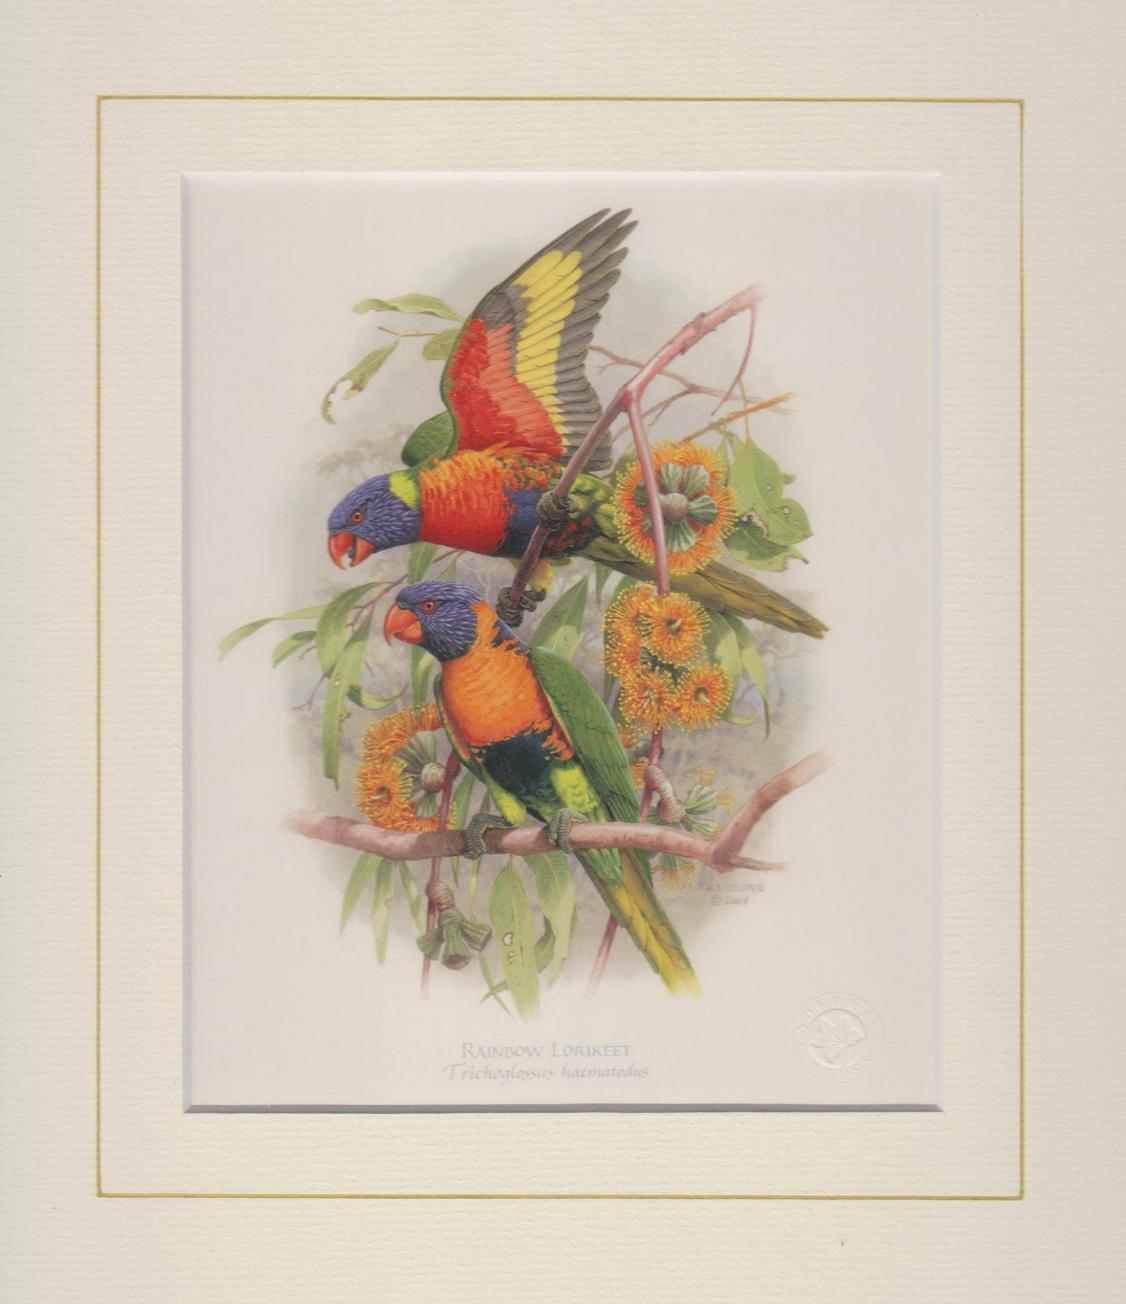 Rainbow Lorikeet Mounted Print